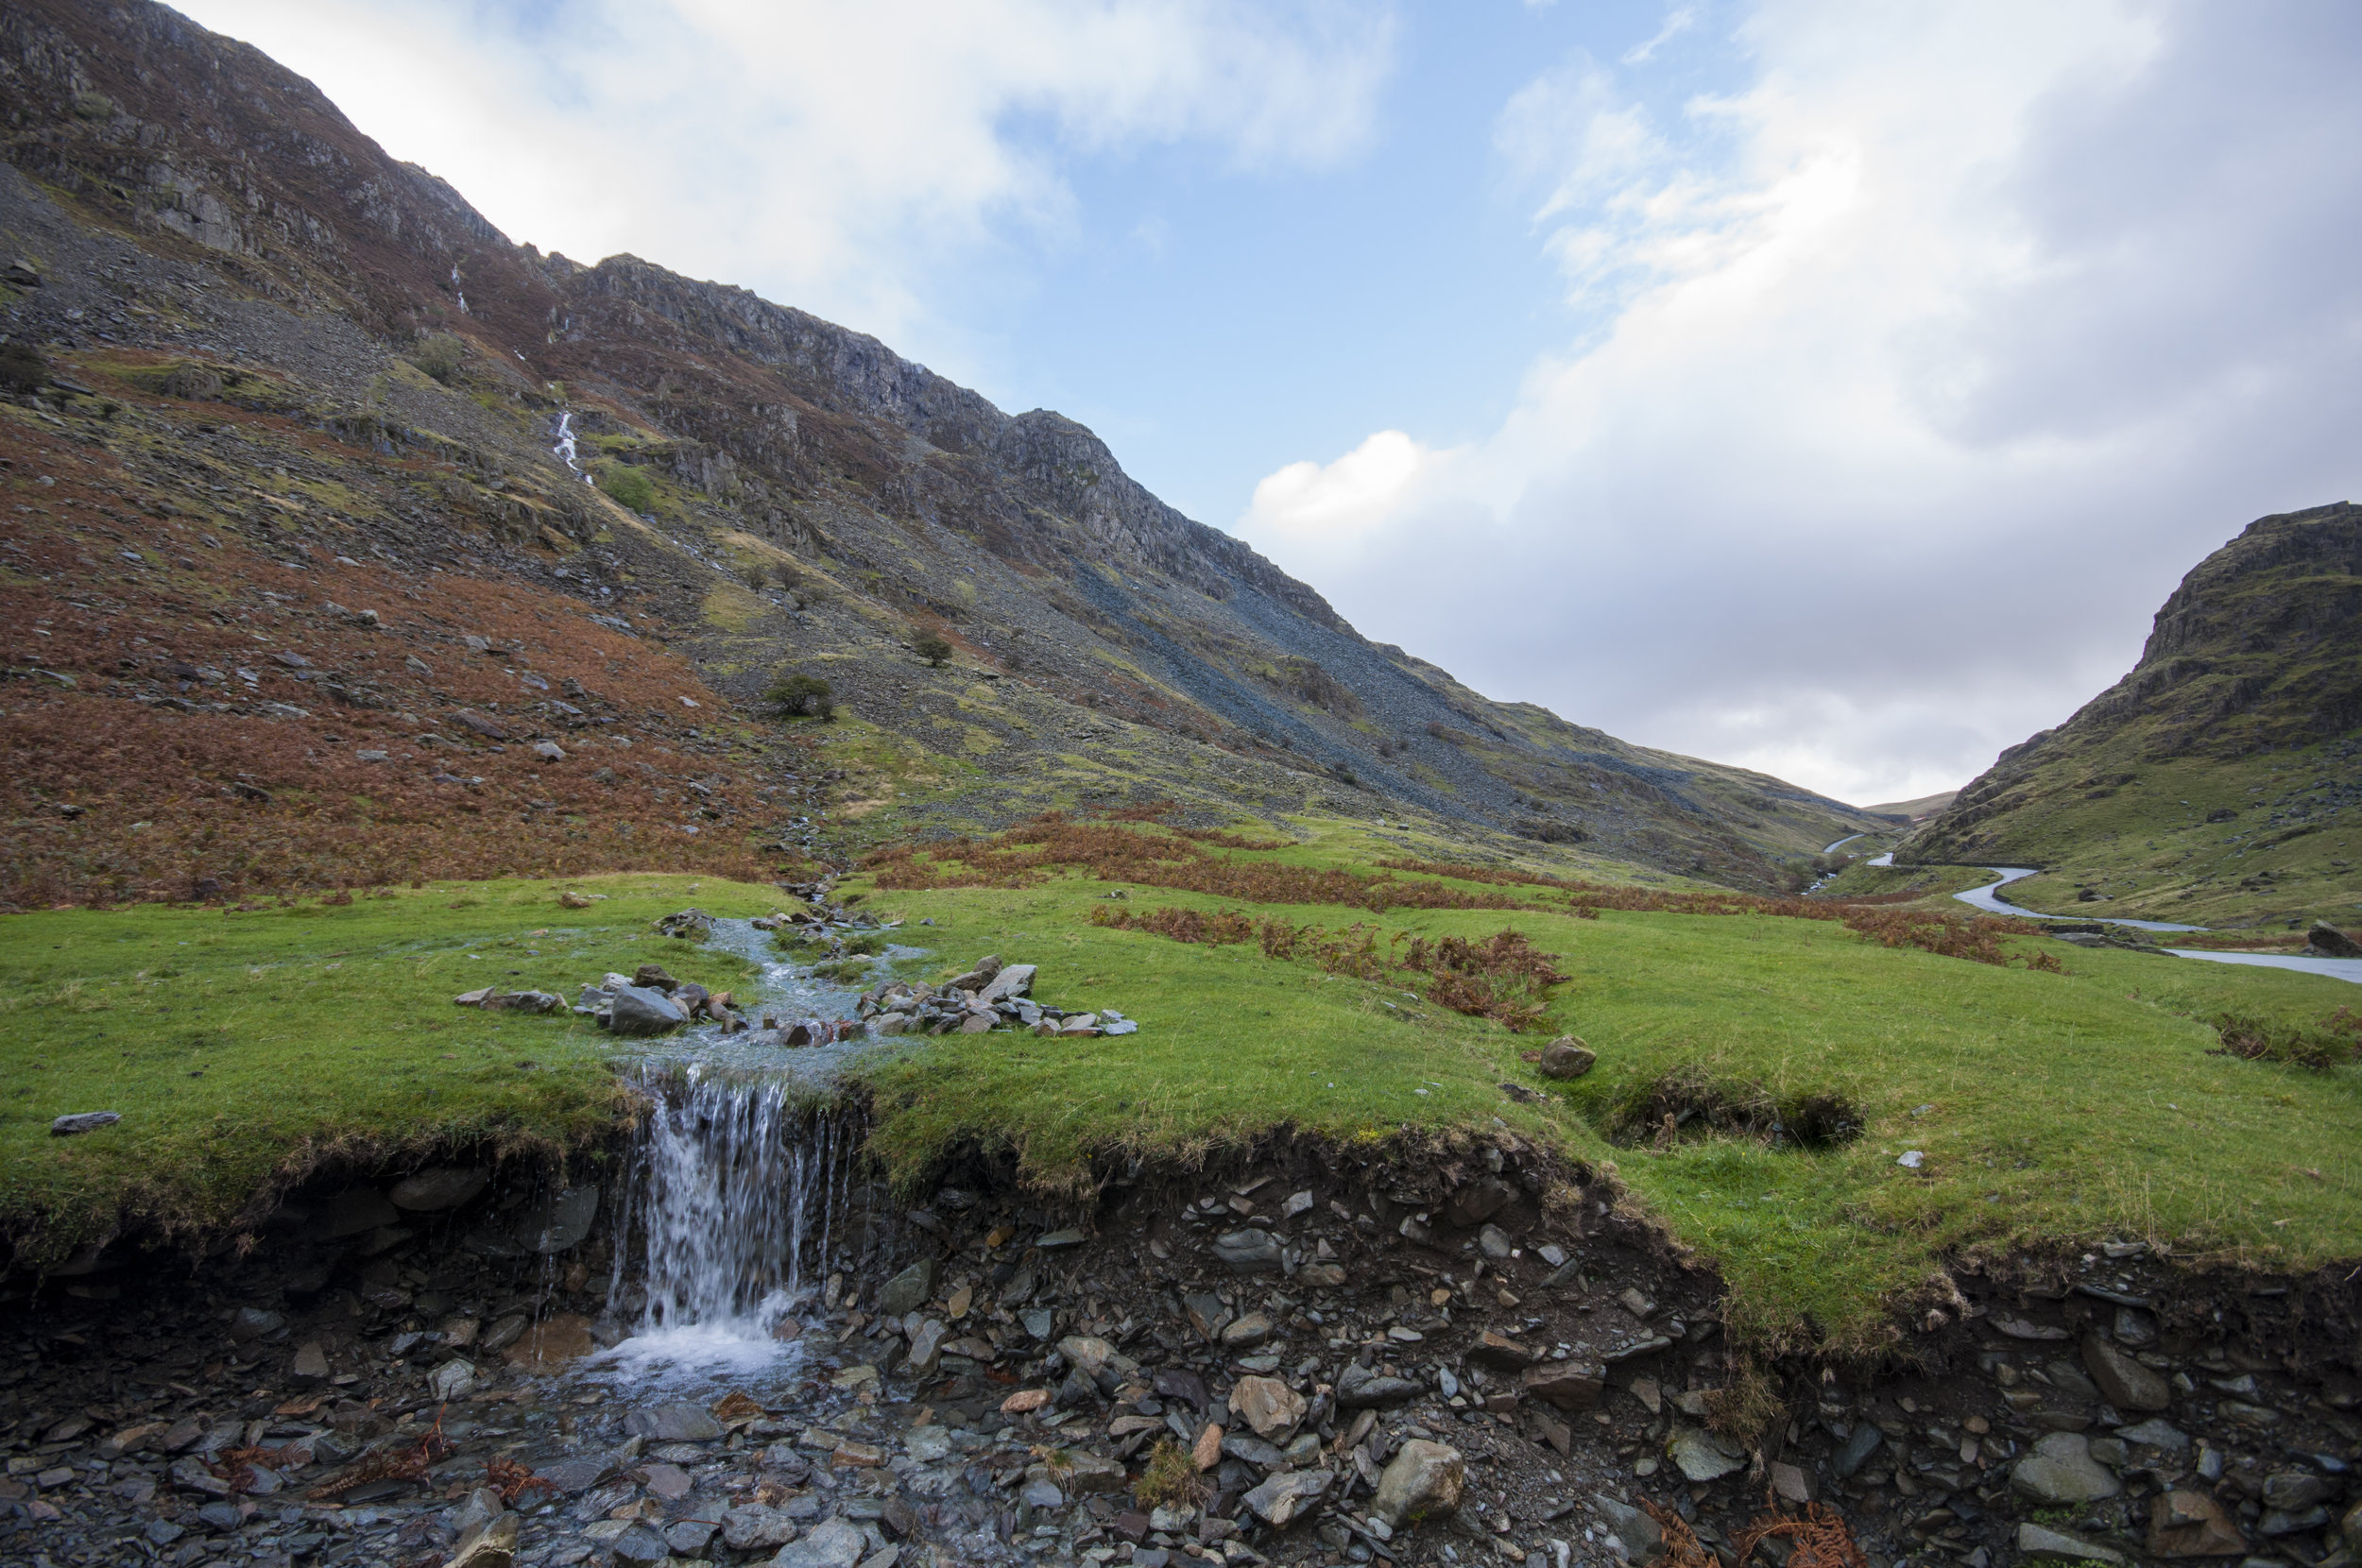 A small mountain stream in the Pennines UK.